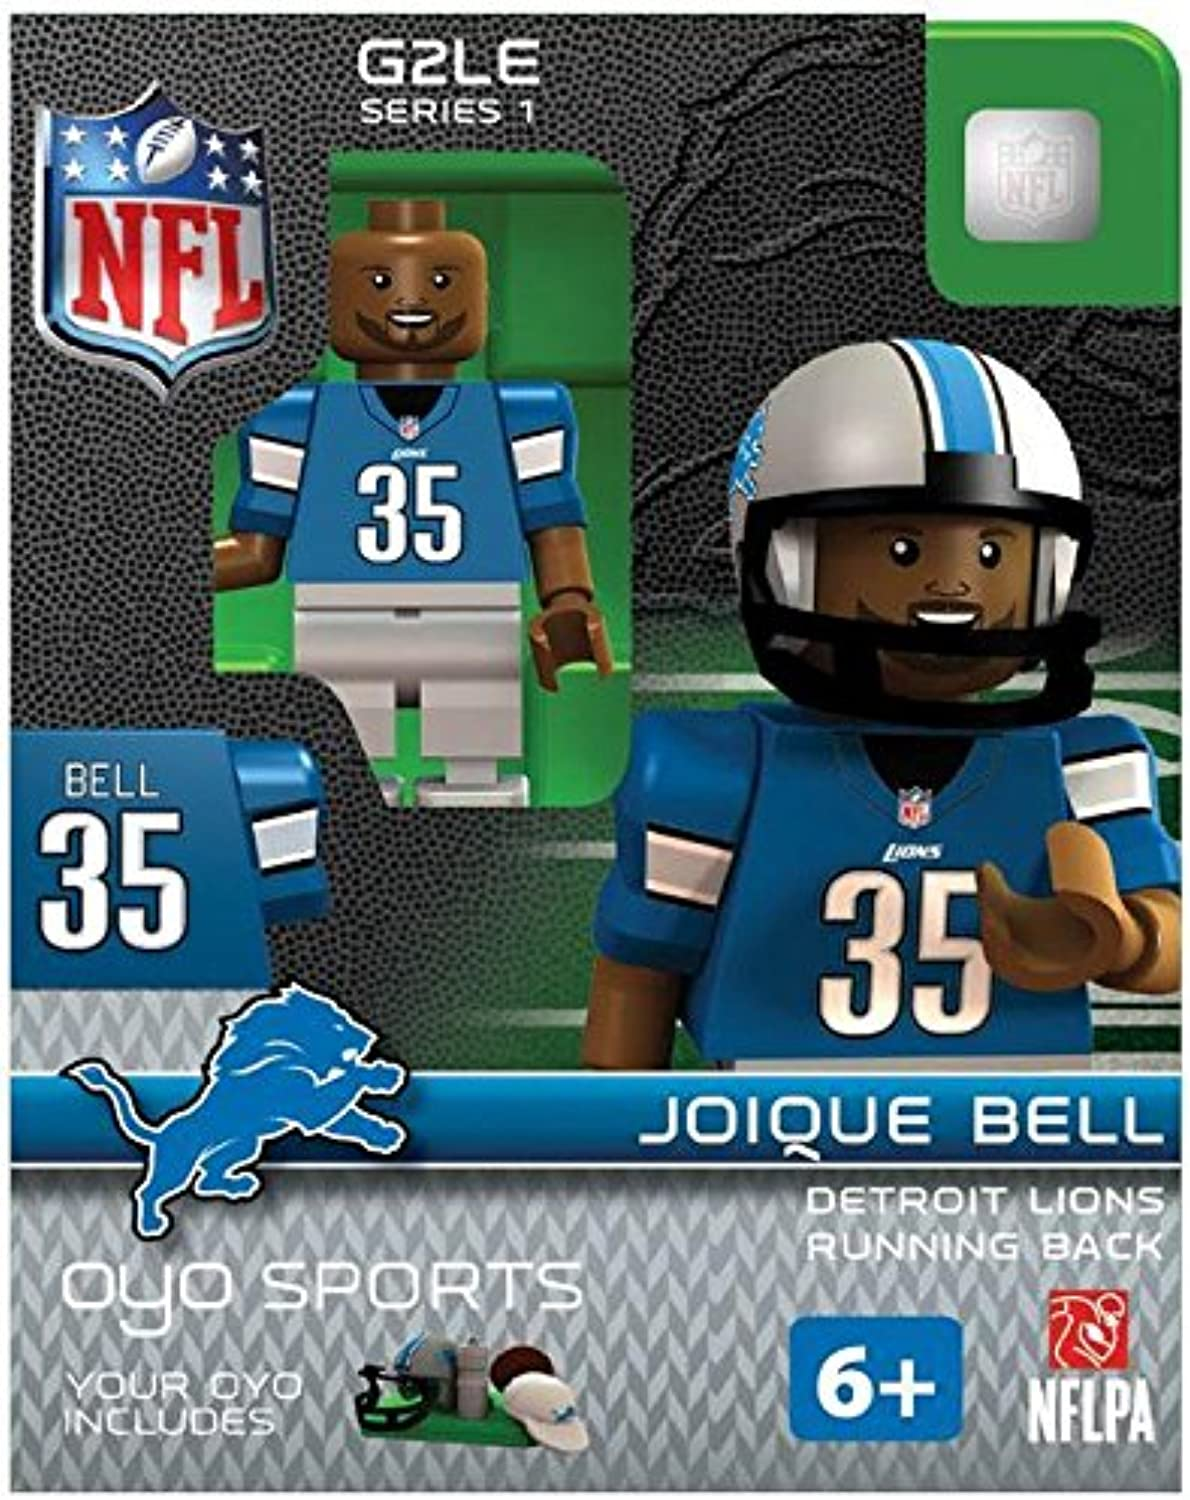 Joique Bell OYO NFL Detroit Lions G2 Series 1 Mini Figure Limited Edition